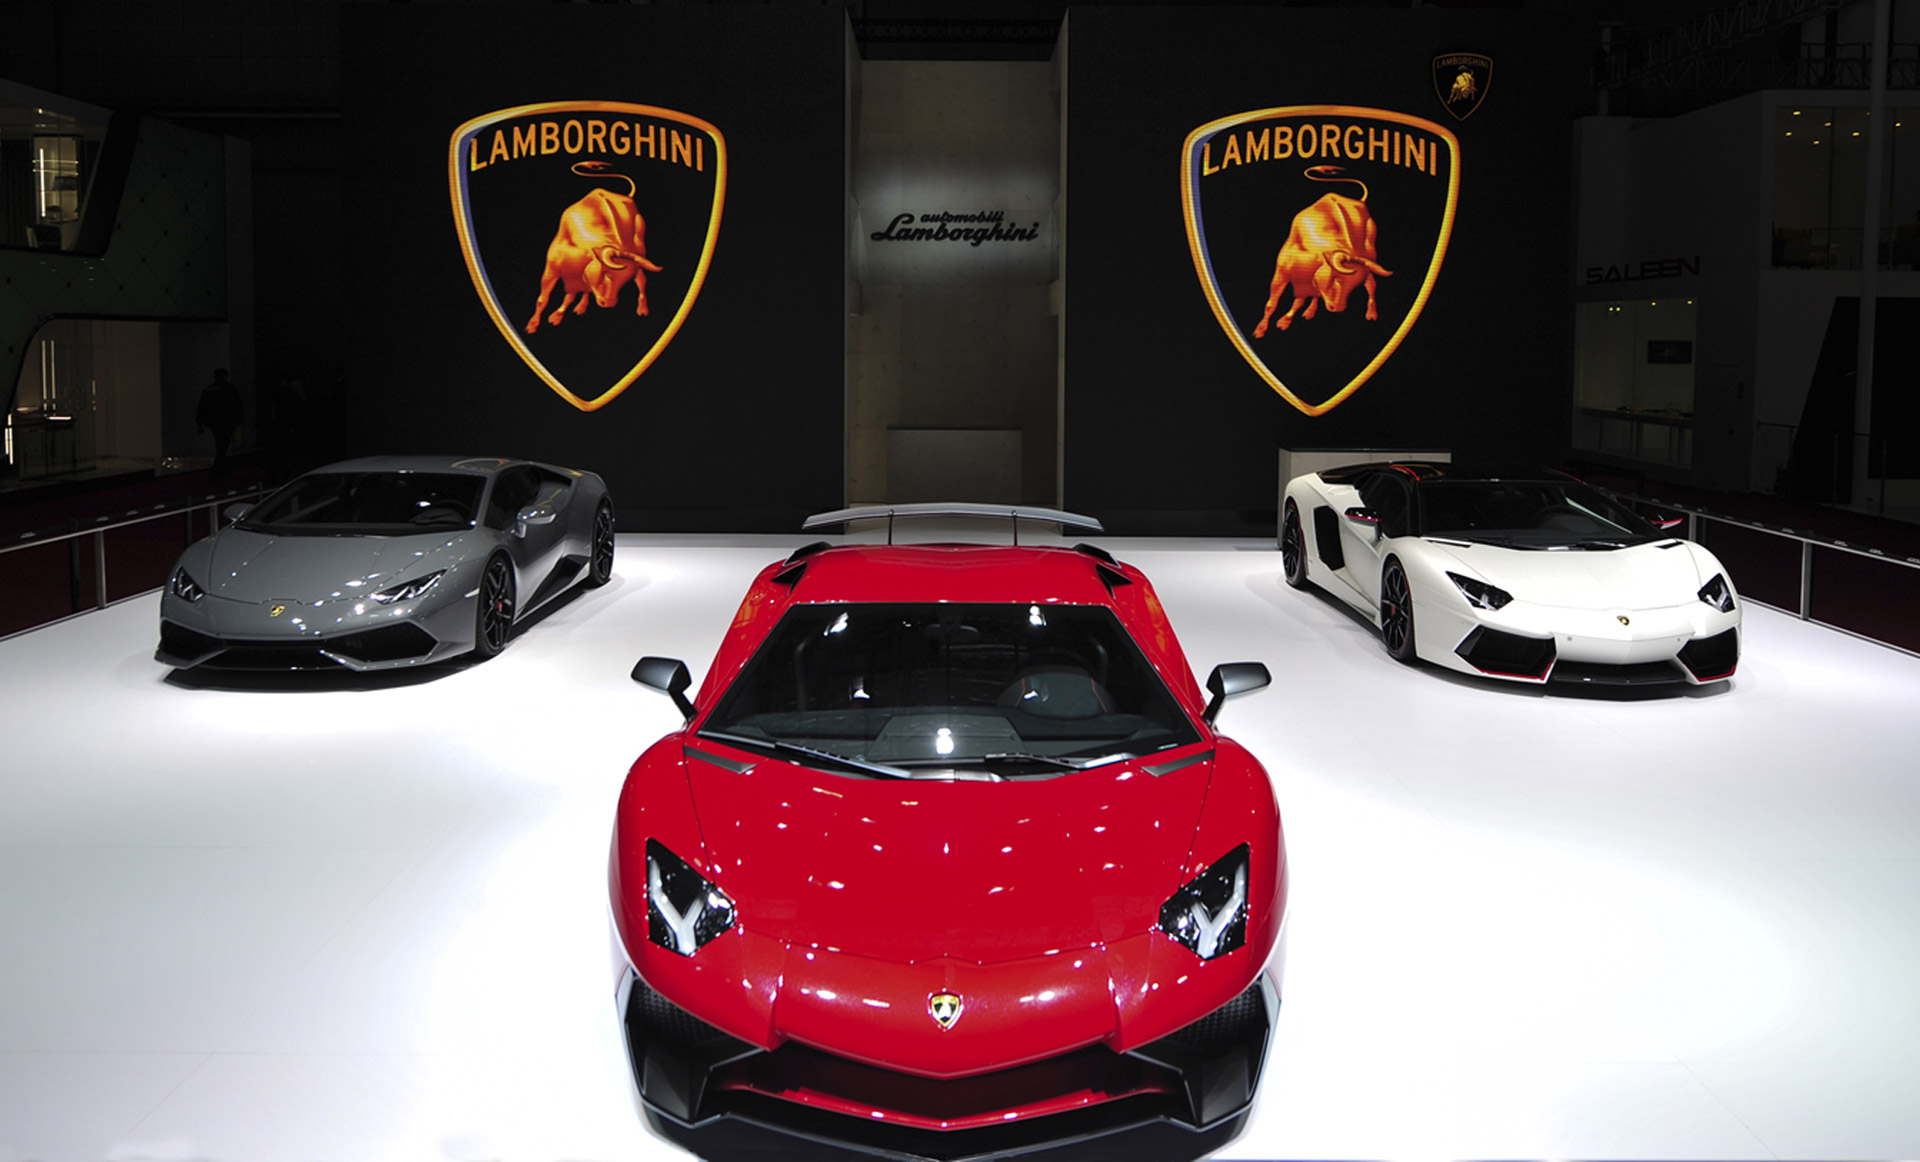 55 additionally 65262 Lamborghini Suv further 1033020 2019 Mercedes Benz G Class Spy Shots And Video furthermore Who Is Ben Baller And Why Does He Have So Many Cool Cars together with 1031417 2016 Opel Astra Sports Tourer Revealed. on powertrain lamborghini aventador